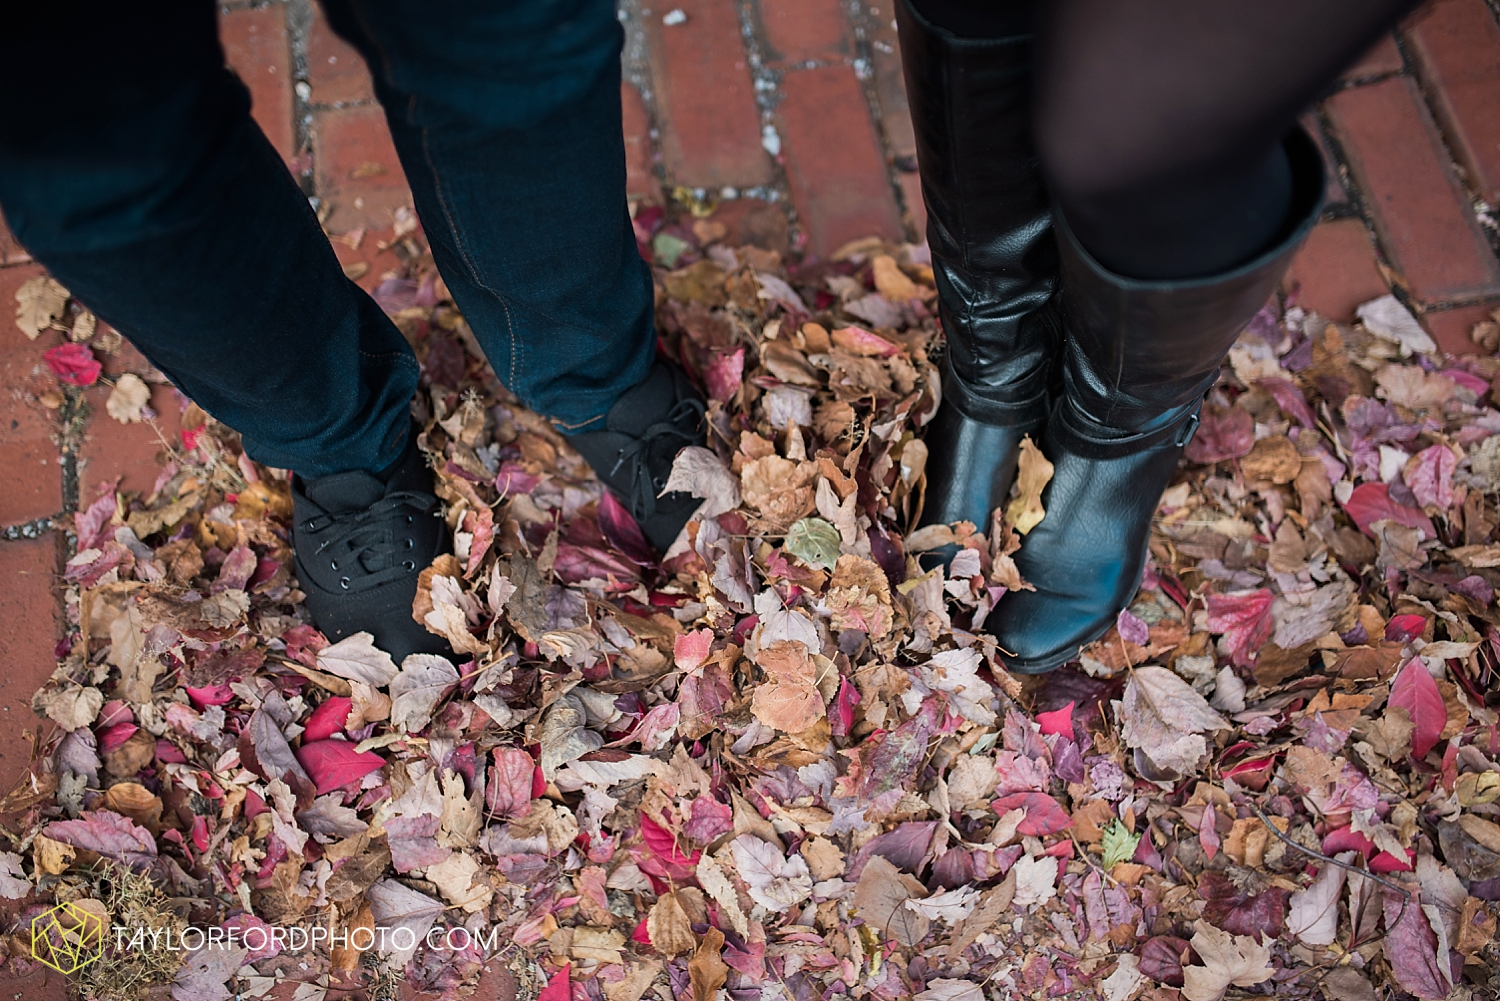 fort_wayne_photographer_lindsay_clint_taylor_ford_engagement_3956.jpg